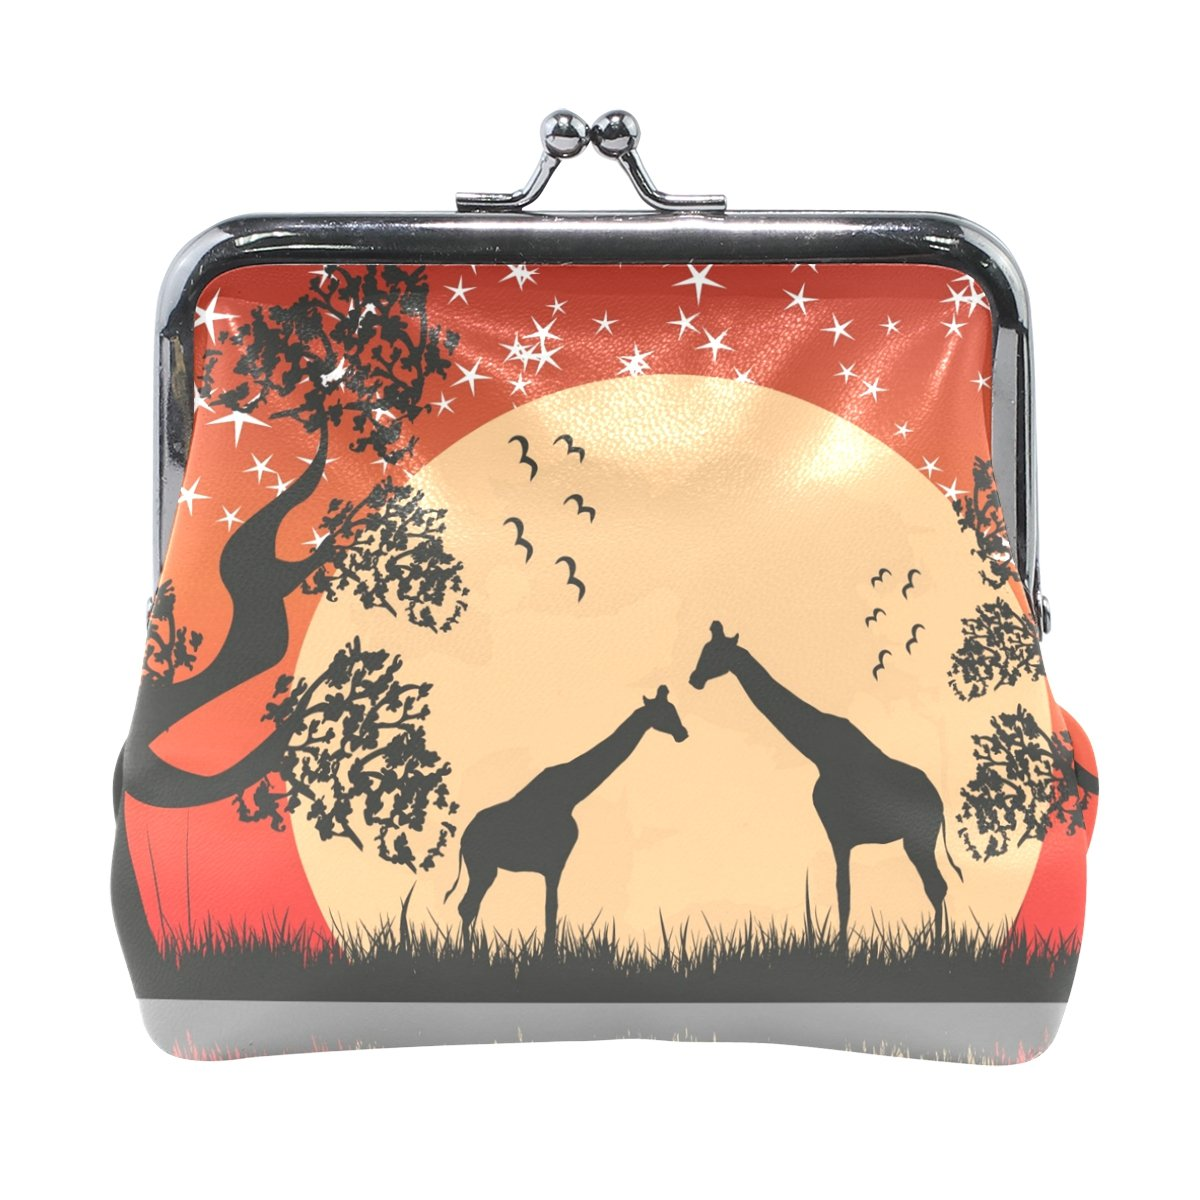 Sunlome Sunset Giragges Bird Tree PU Leather Wallet Card Holder Ladies Clasp Clutch Purse